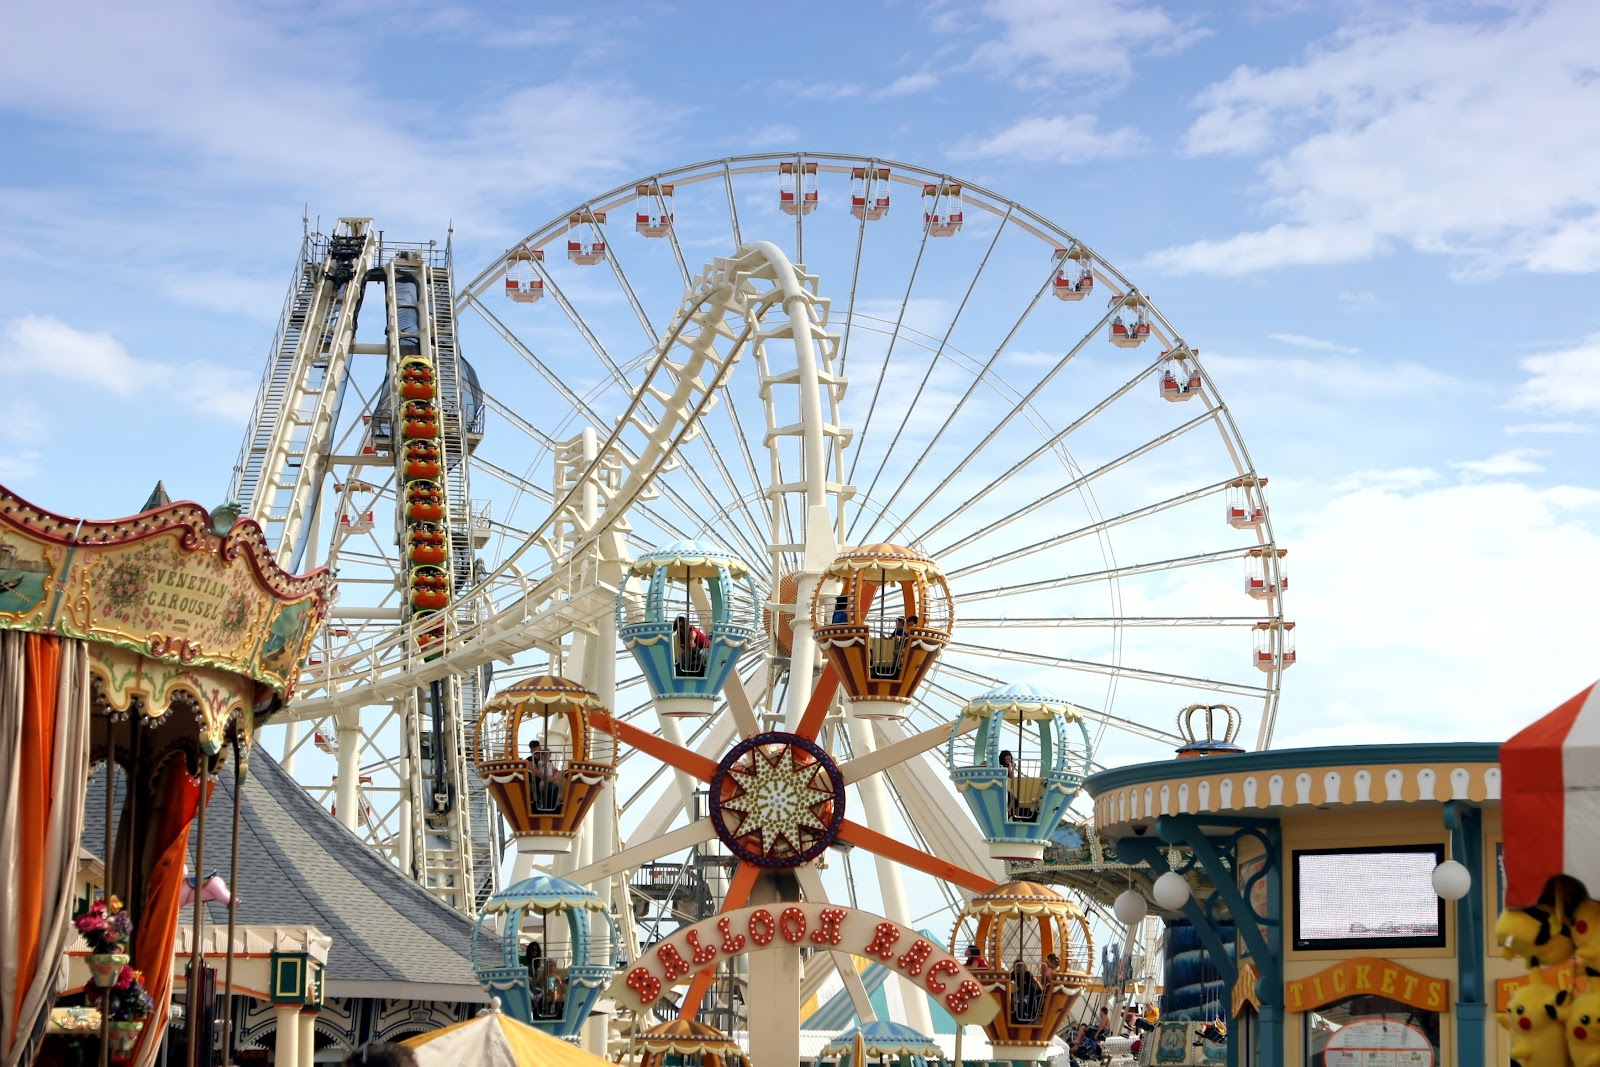 amusement parks types of parks in the us